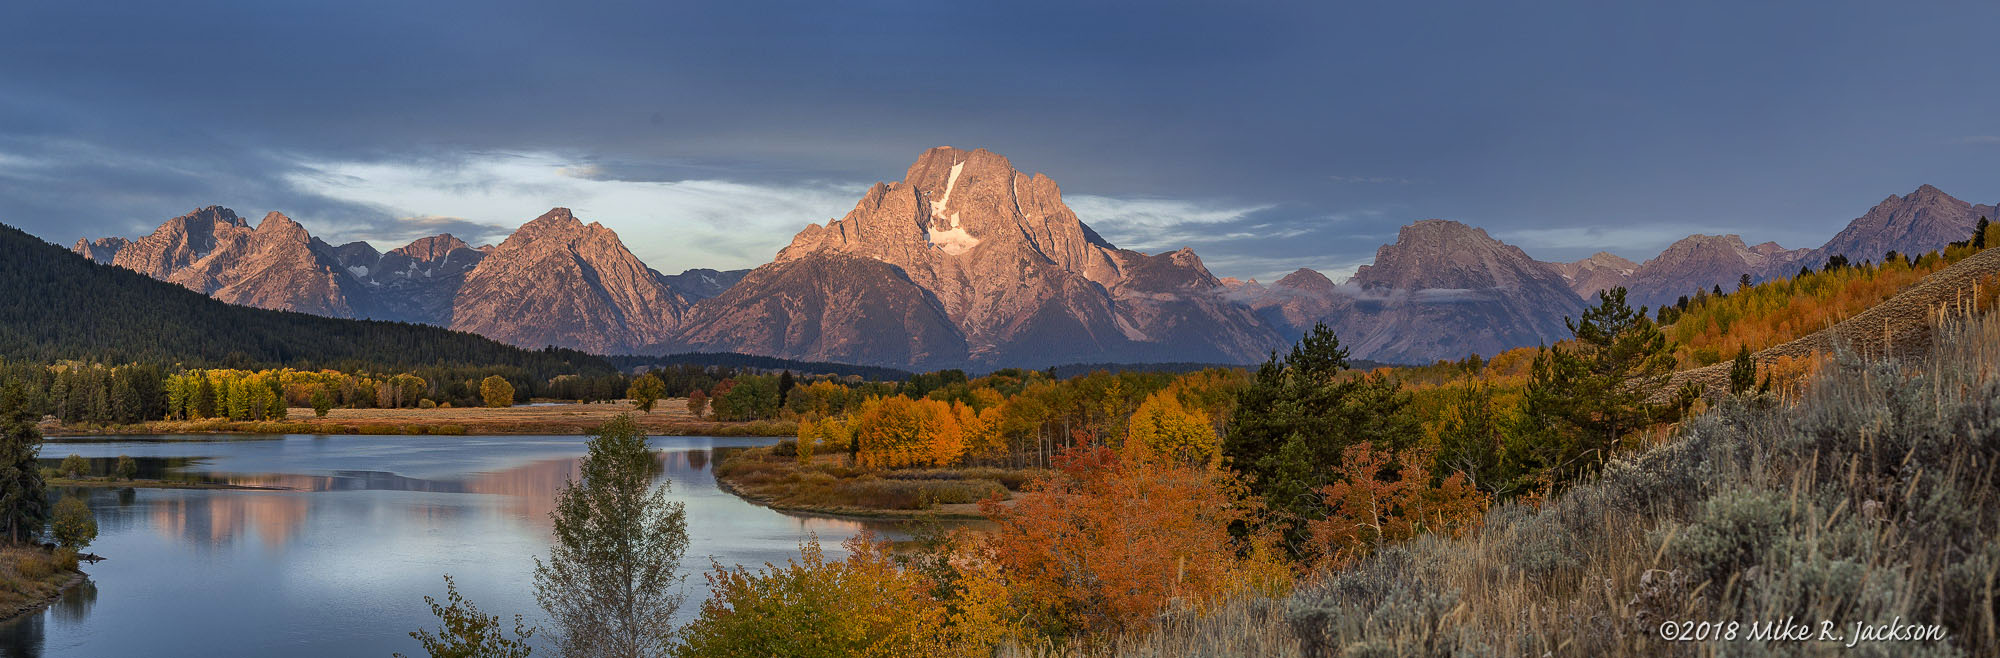 Oxbow Bend in Grand Teton National Park